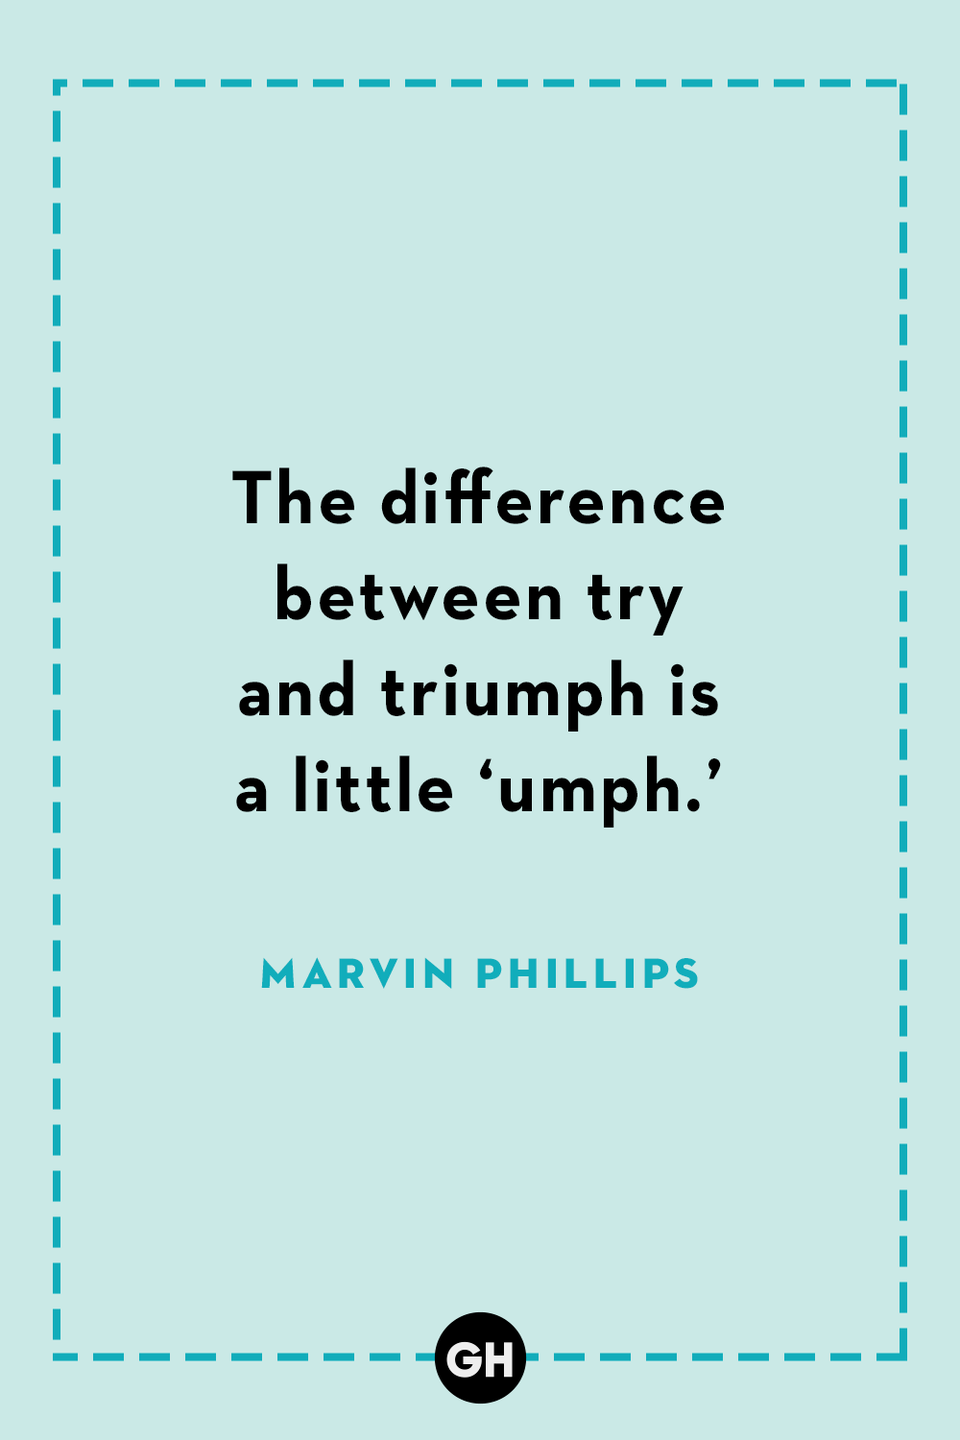 <p>The difference between try and triumph is a little 'umph.'</p>